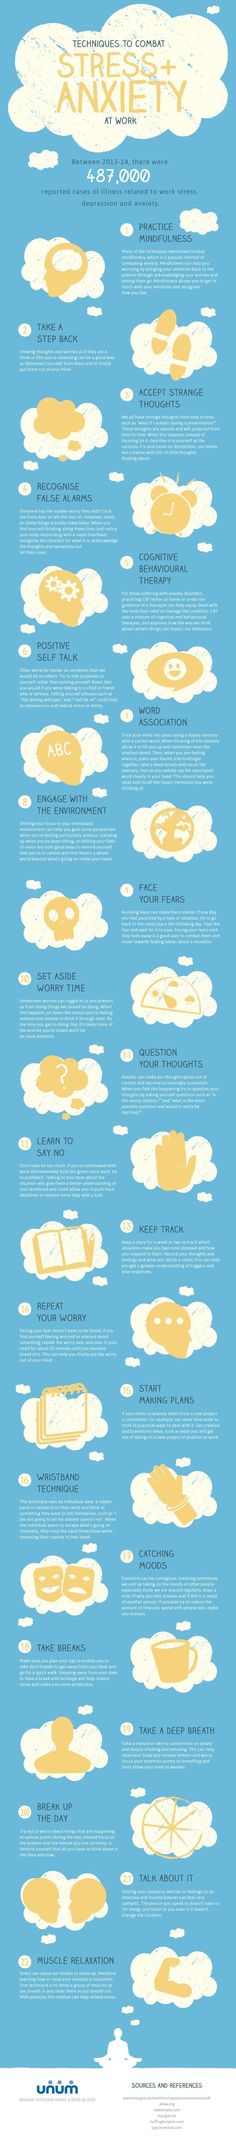 stress relief tips | stress management | mental health | wellness | self discovery | healthy lifestyle | self care